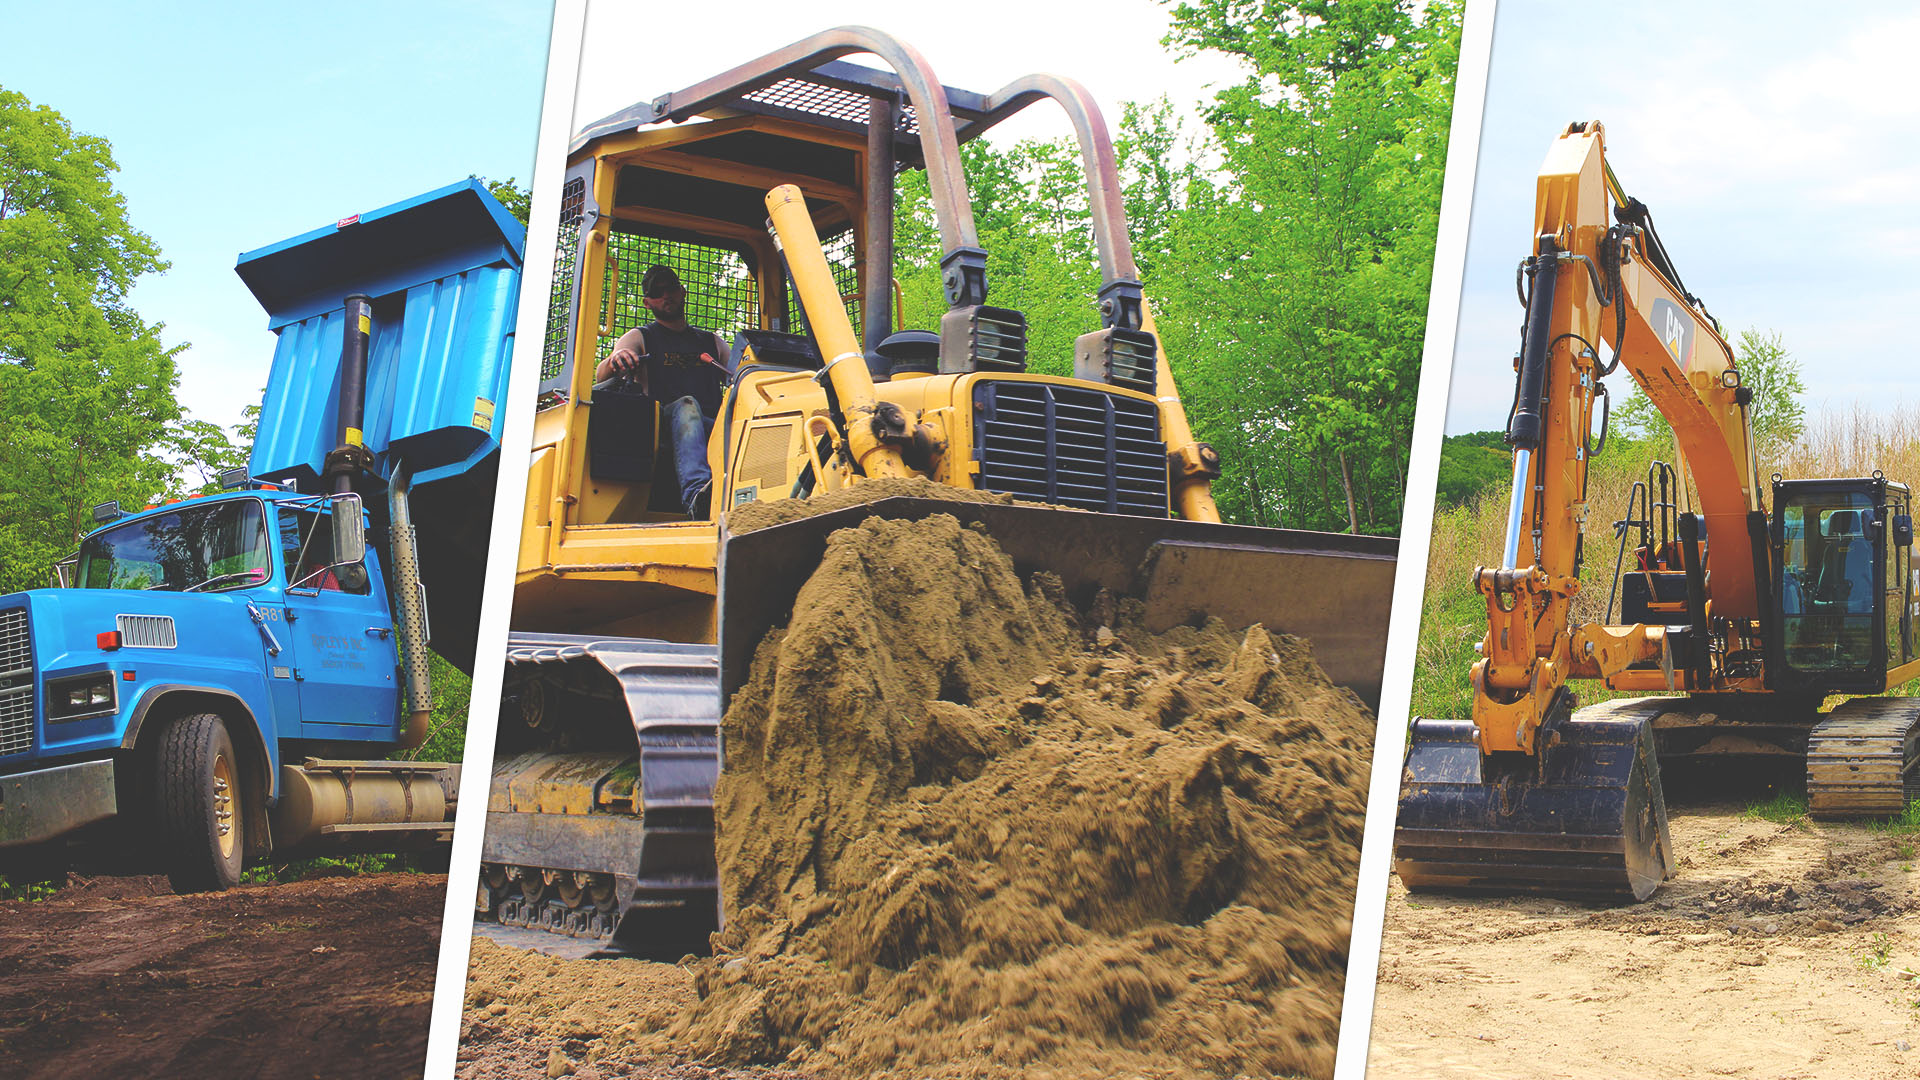 Ripleys bulldozer pushing dirt